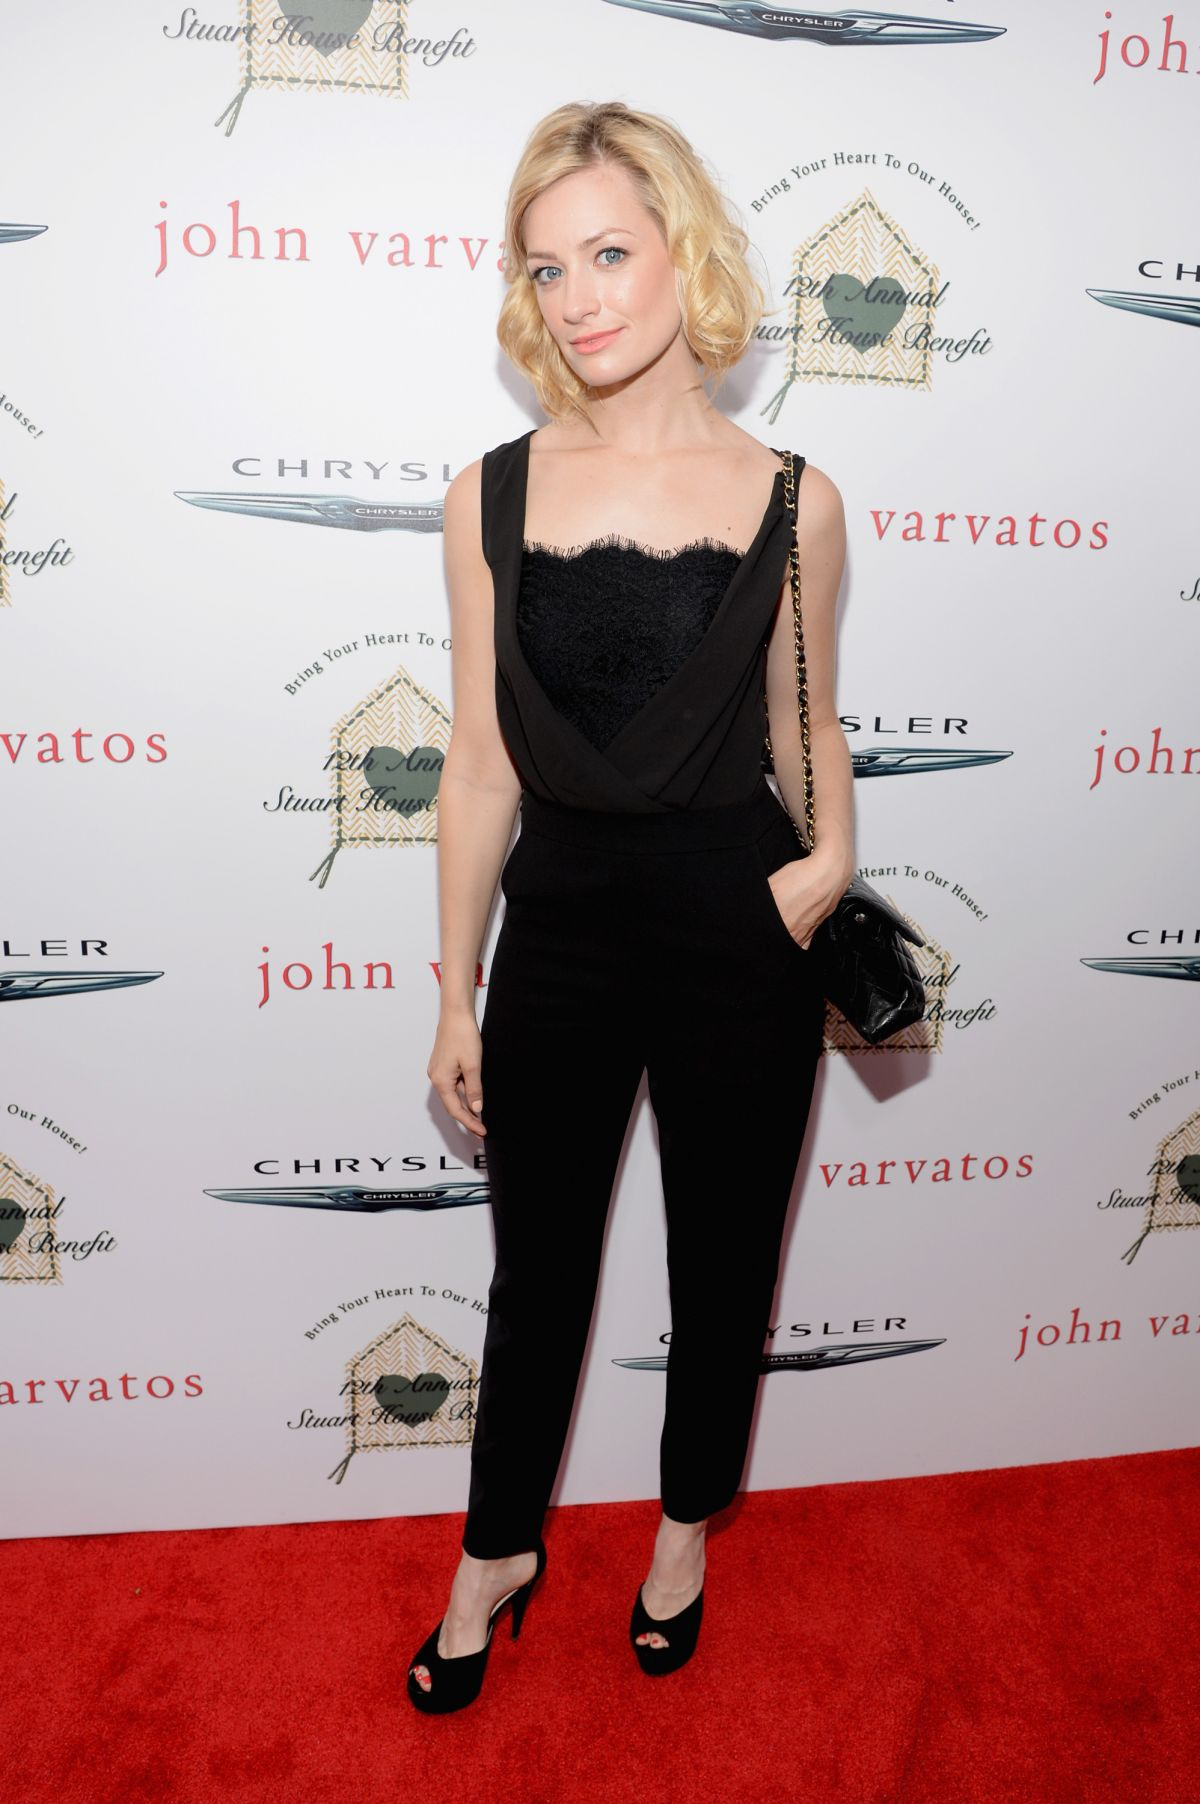 BETH BEHRS at John Varvatos at 2015 Stuart House Benefit in Los Angeles